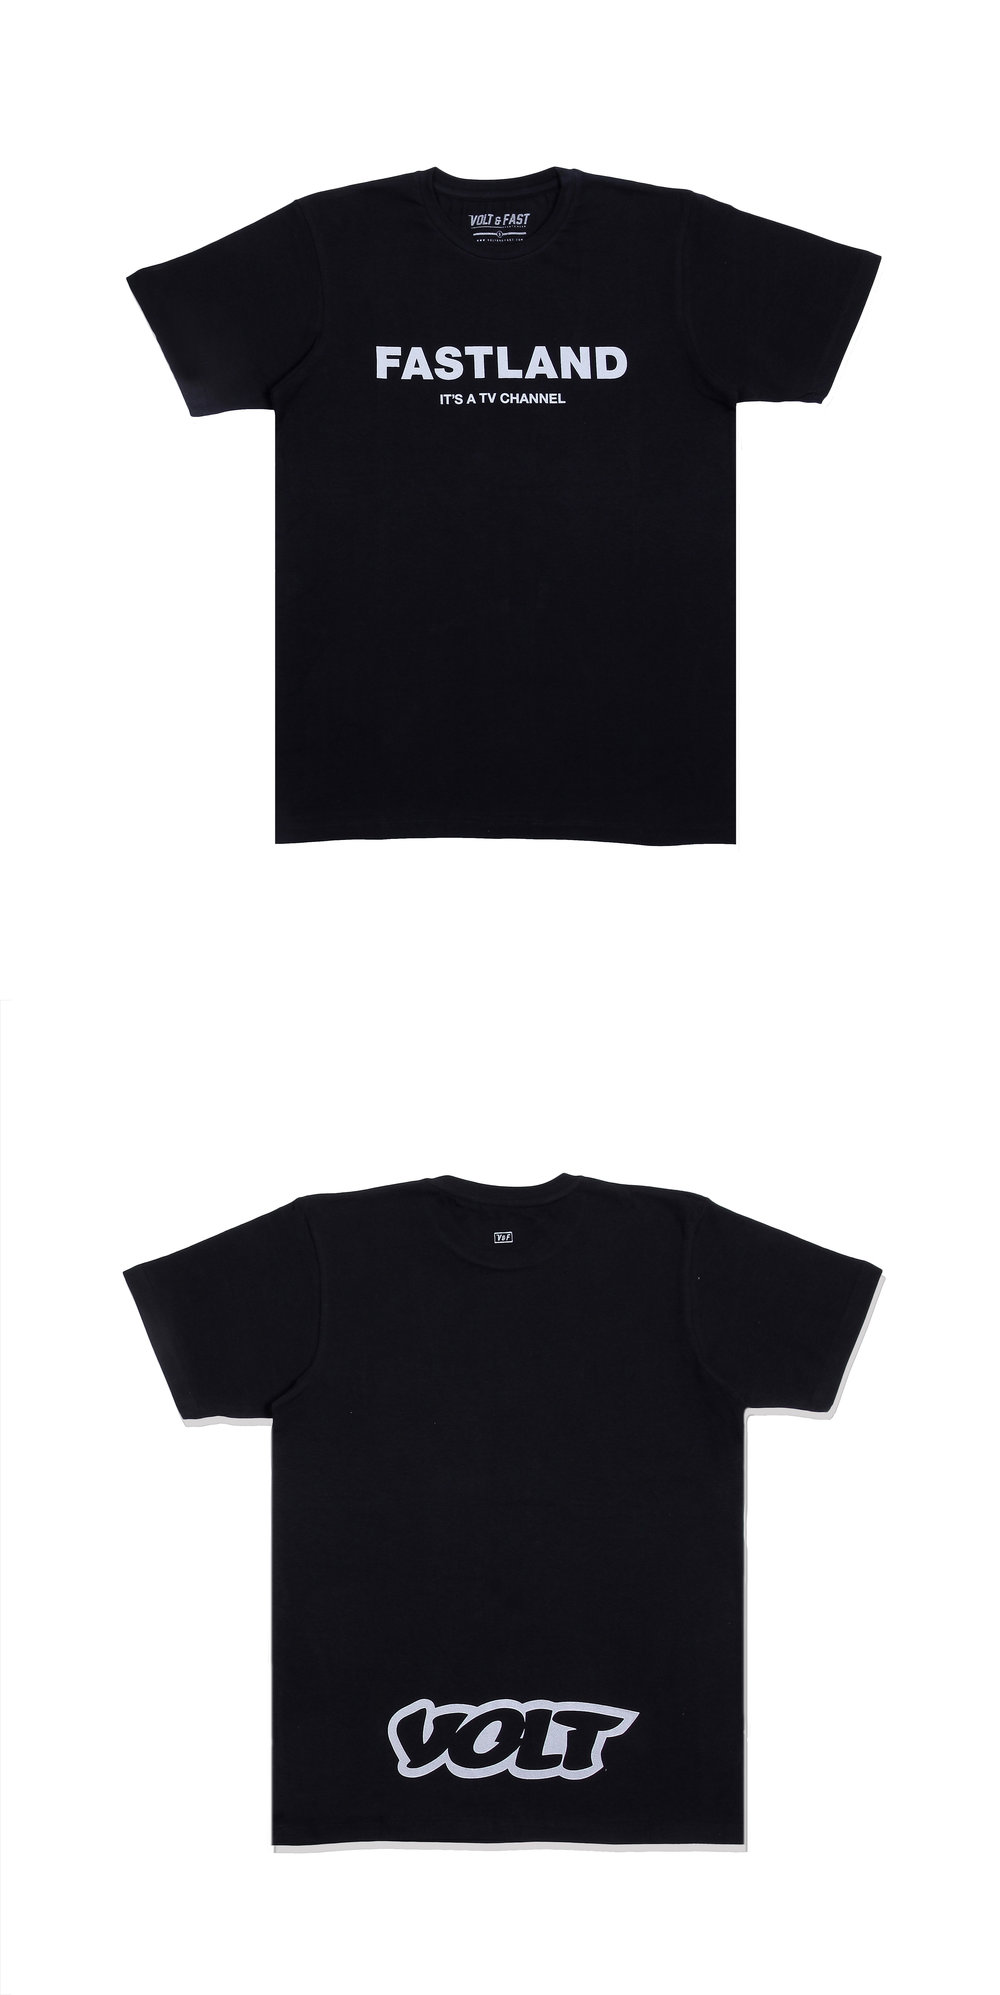 Fastland   F4NTOME Capsule Collection  Features:  - Cotton spandex fabric - Printed with reflective ink - Reflective label - Regular fit  Rp 250.000